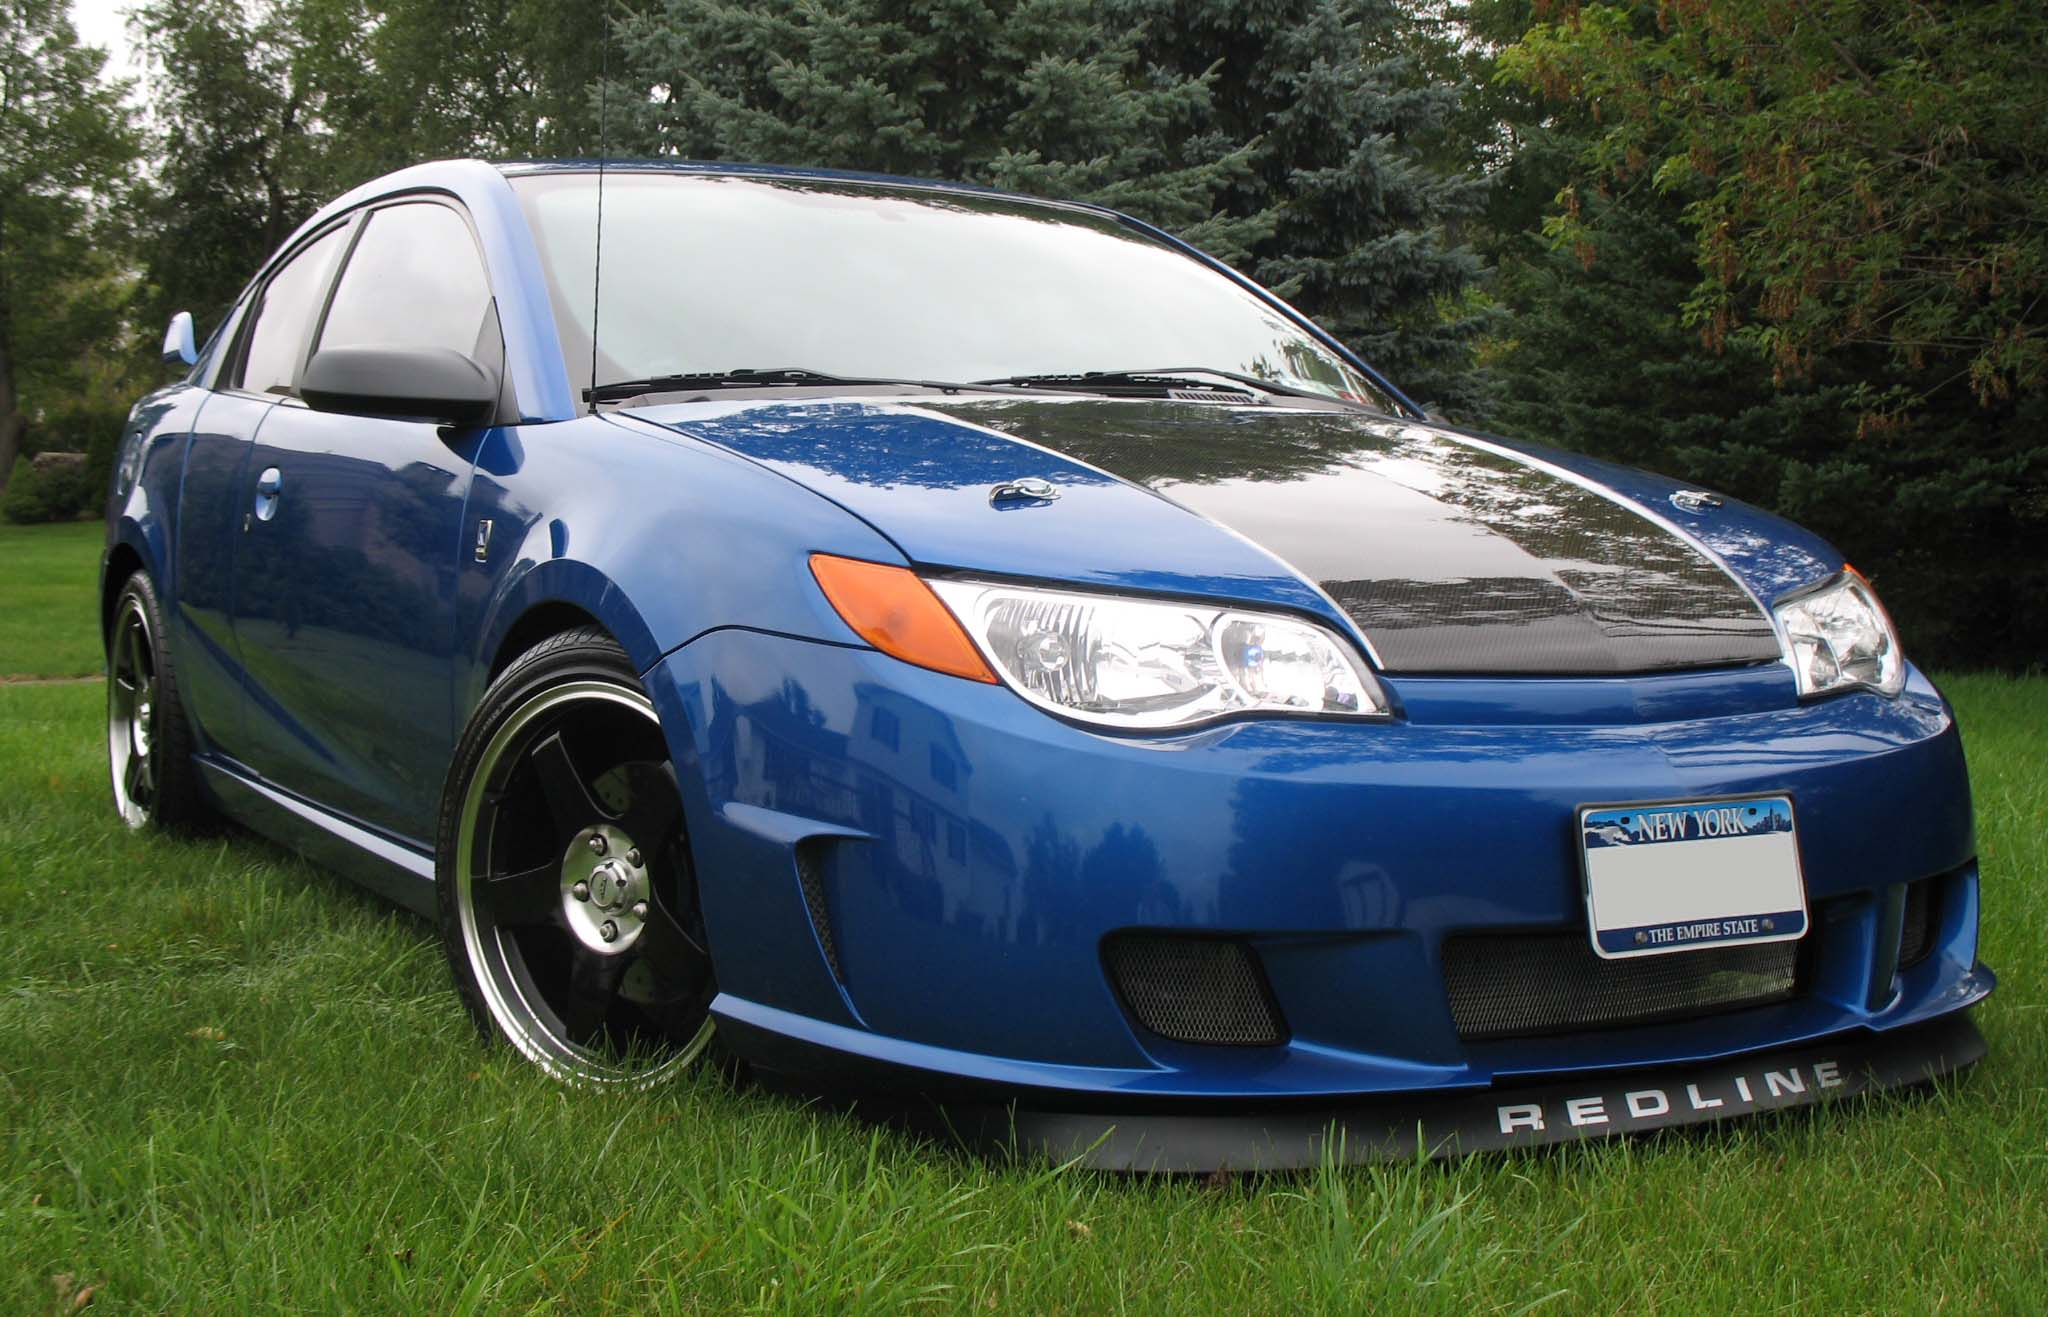 Cars For Sale In Columbia Sc >> 2004 modded Ion Redline For Sale in Upstate New York ...